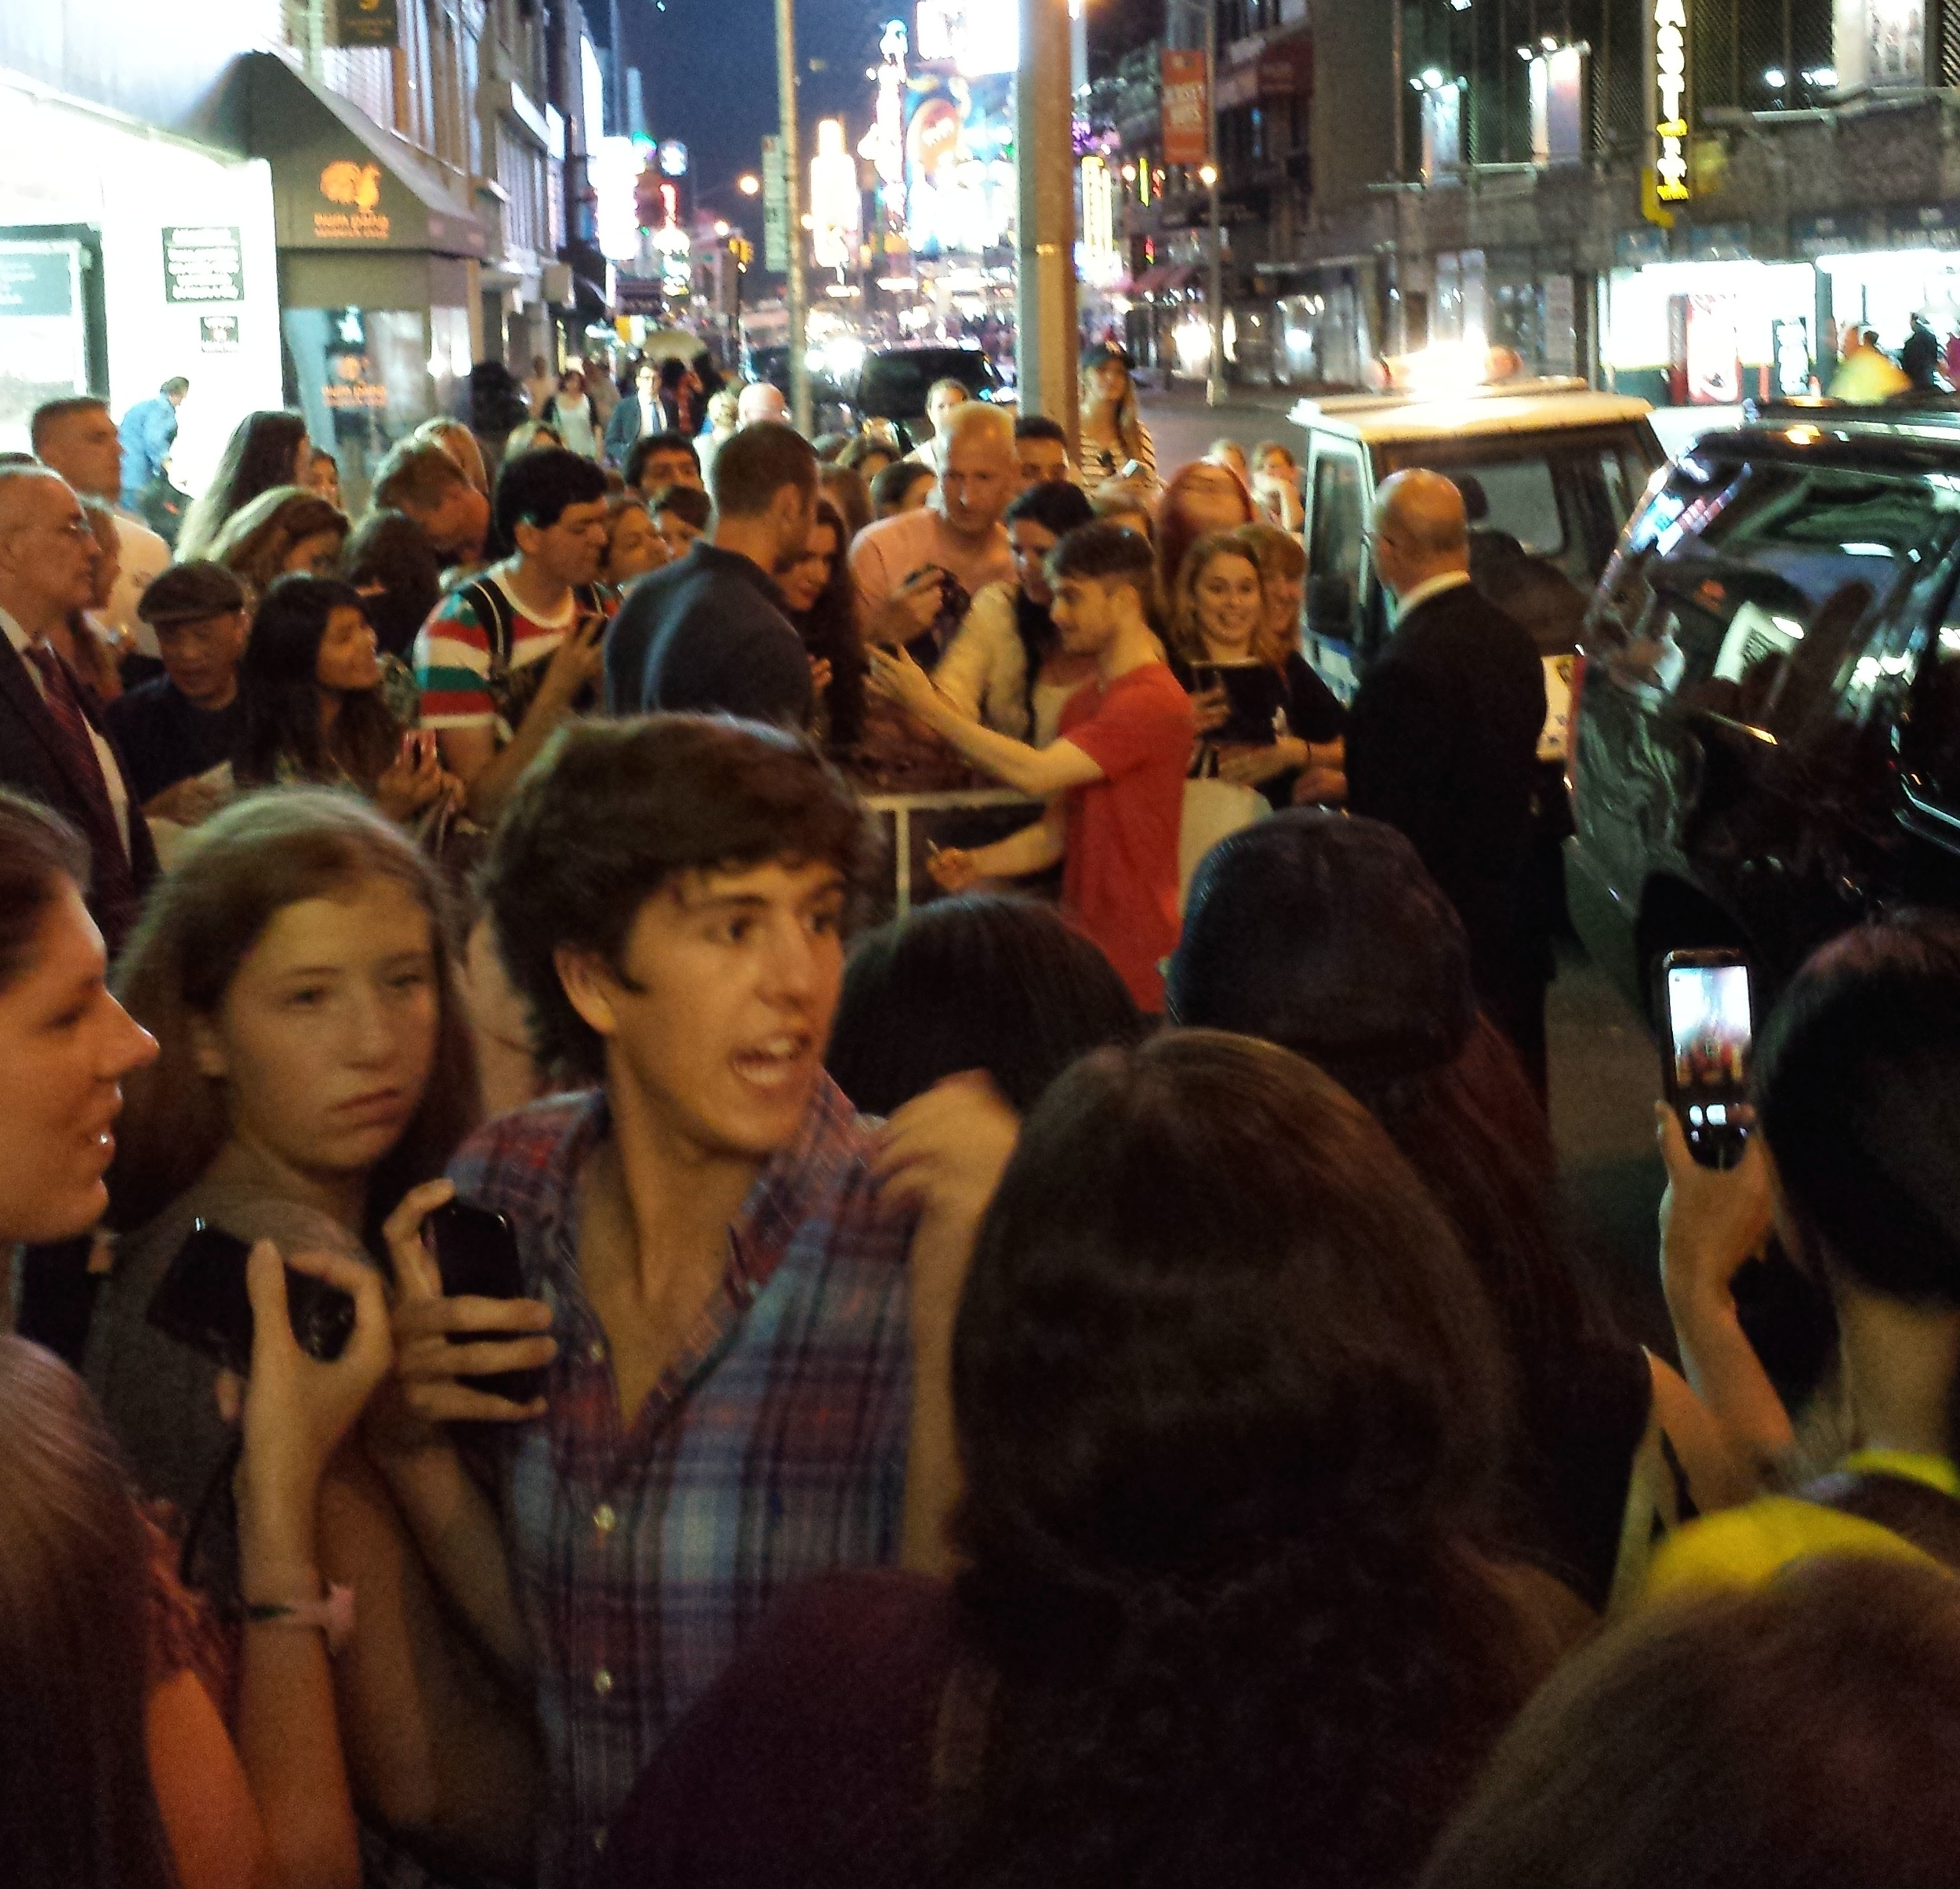 Daniel Radcliffe (Harry Potter, red shirt) takes photos with fans outside of his Broadway show   The Cripple of Inishmaan  . Two police officers stand by. He was doing this when we happened by, and continued as we walked past.